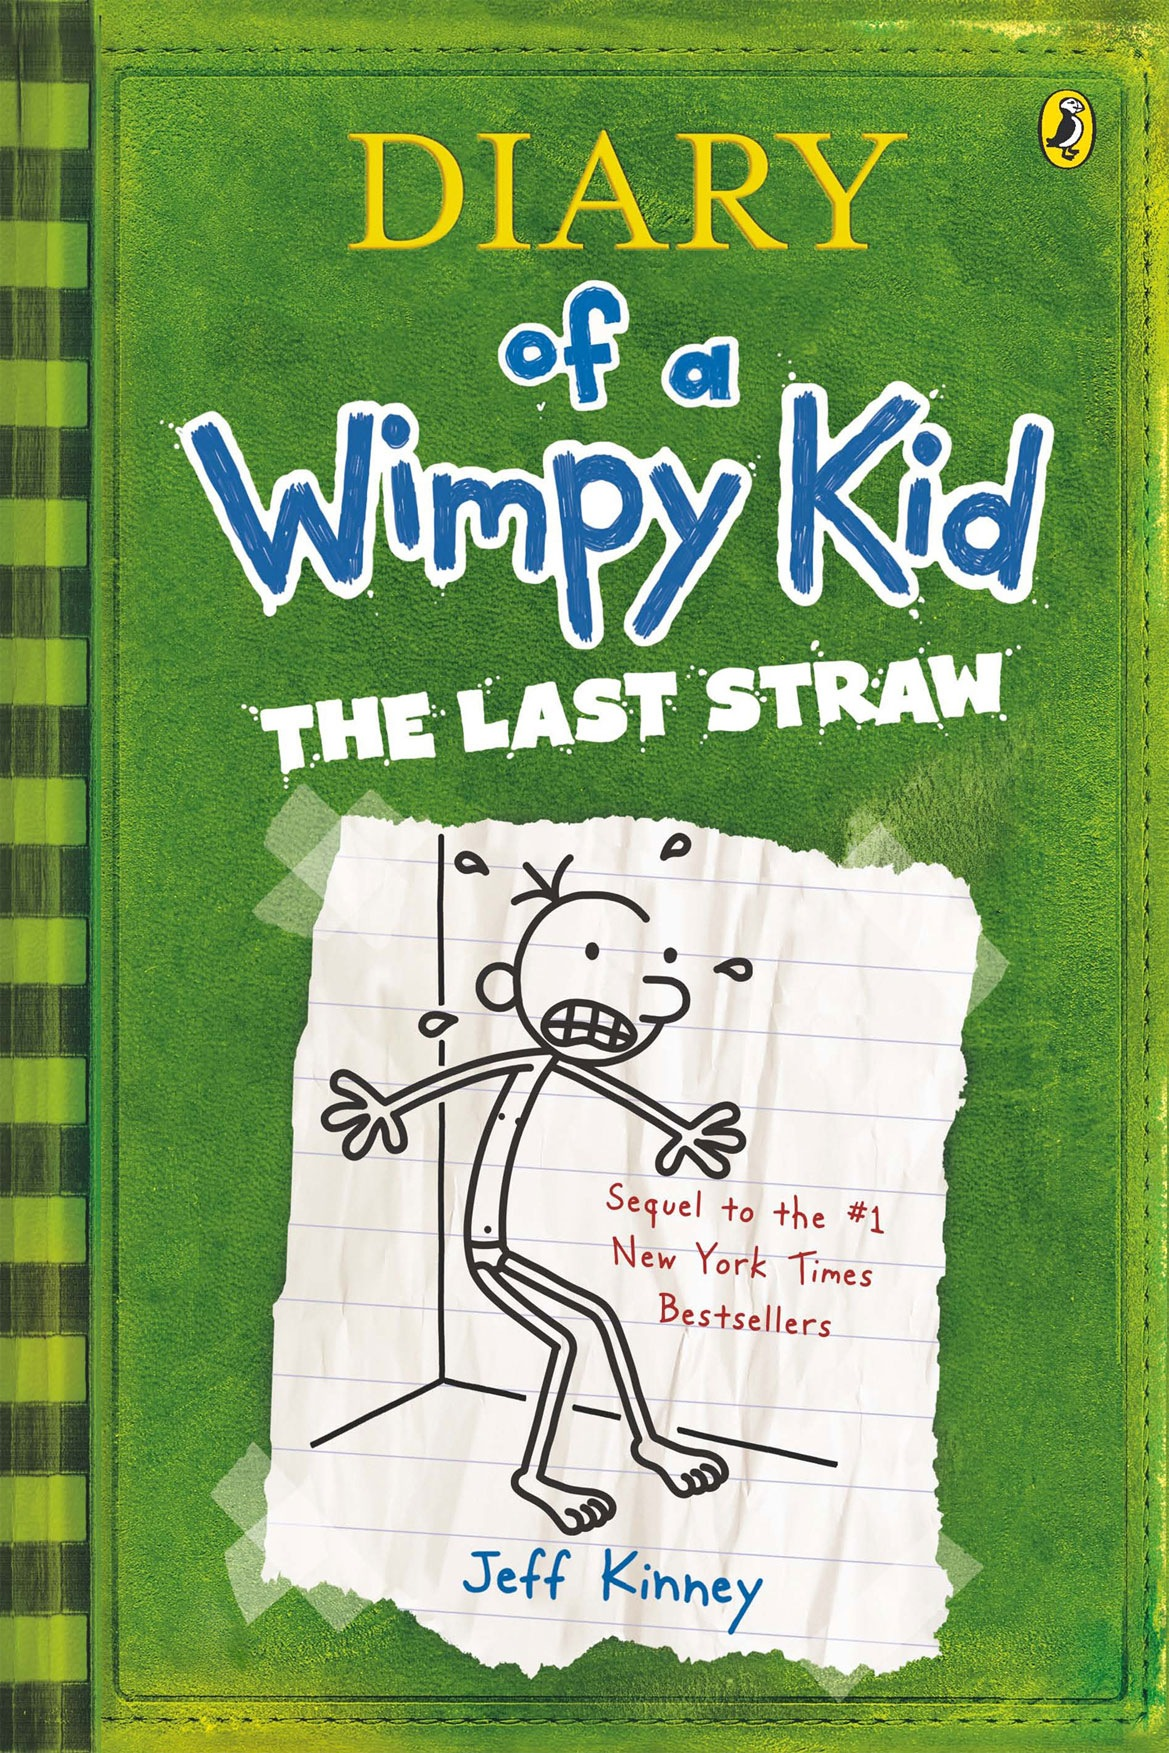 The last straw diary of a wimpy kid book 3 by jeff kinney the last straw diary of a wimpy kid book 3 by jeff kinney paperback myer online solutioingenieria Gallery